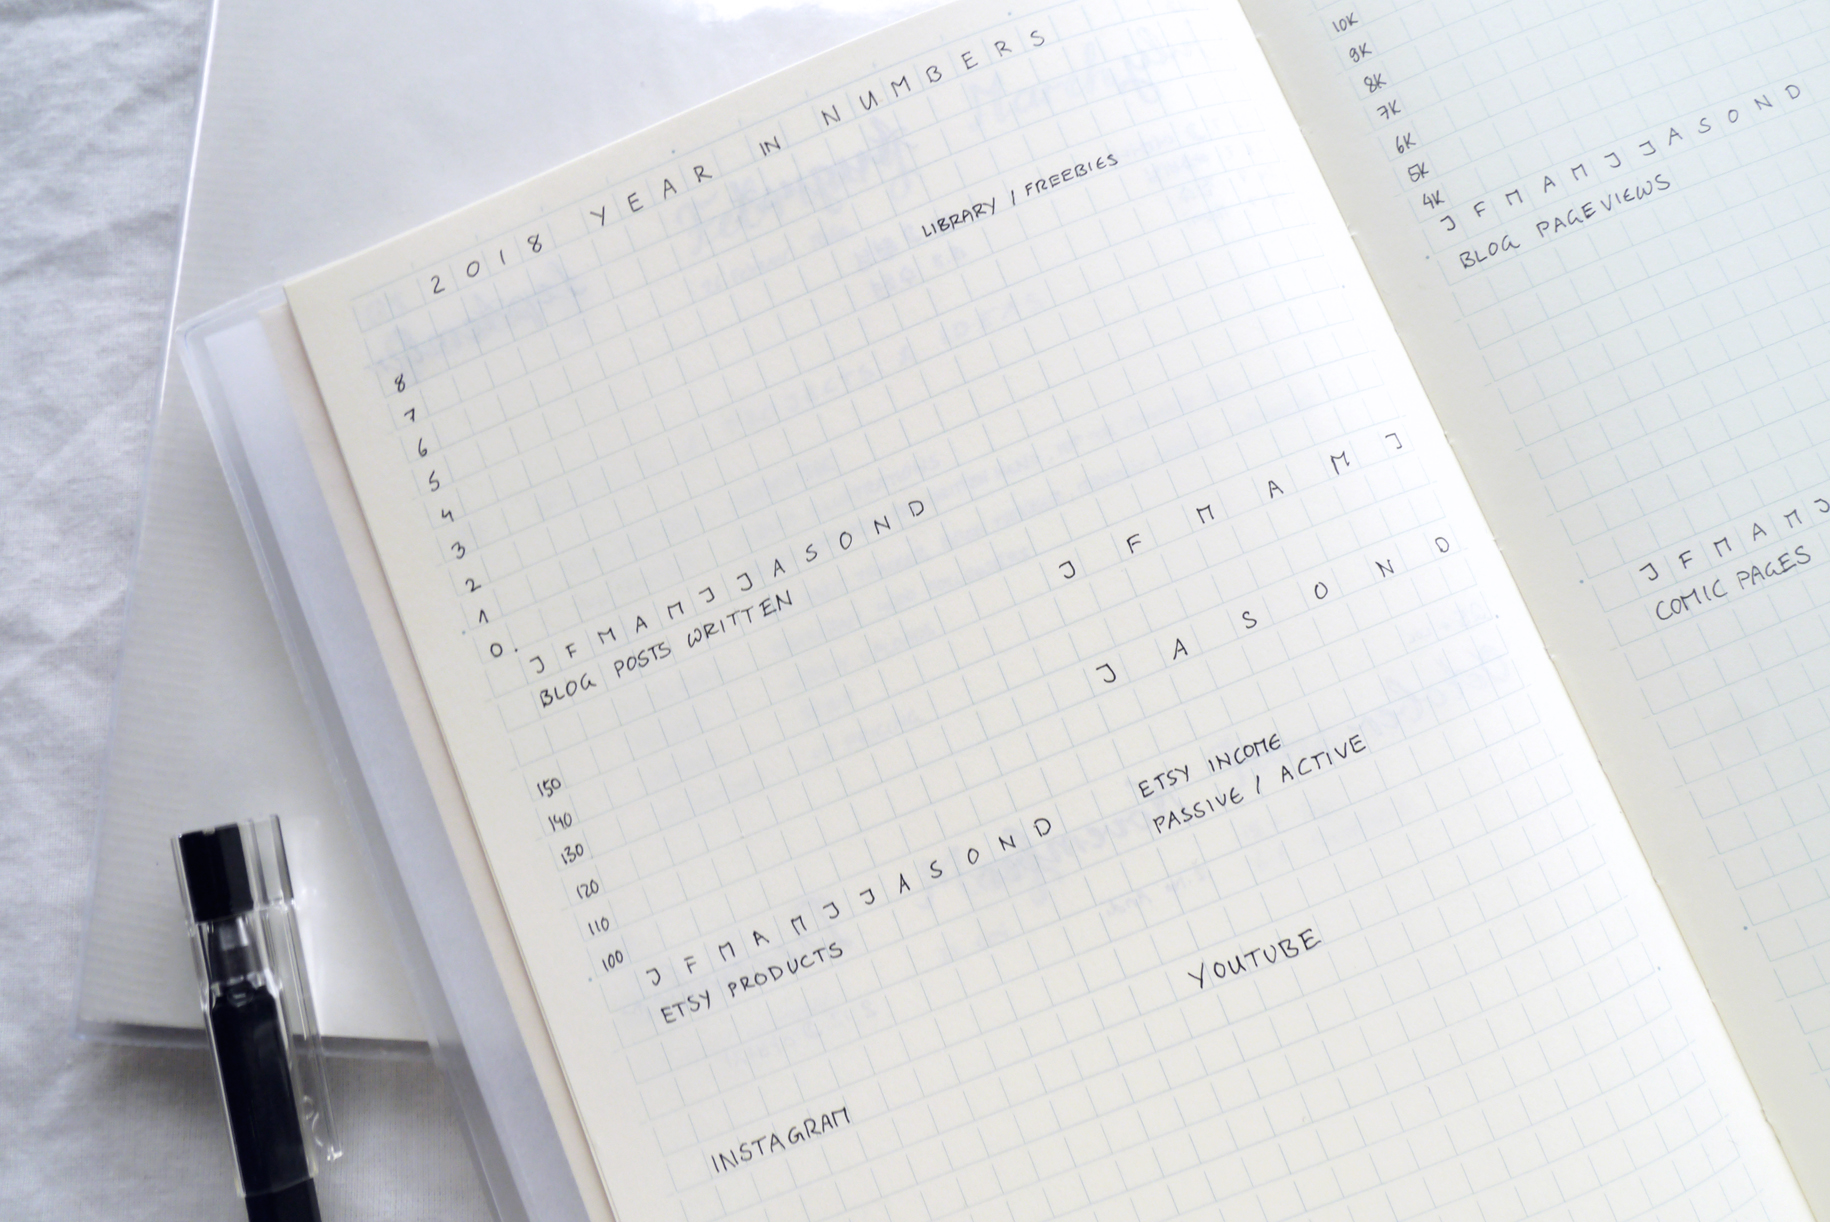 My Bullet Journal Setup for 2018: Yearly collections in a Midori MD Notebook. Minimalist spreads combined with creative doodles, calligraphy practice, and habit trackers. Visit my blog to see all my bujo layouts for productivity, project planning, and staying creative in the new year. Bullet journal, Minimalism, Art Journal, Creative Life